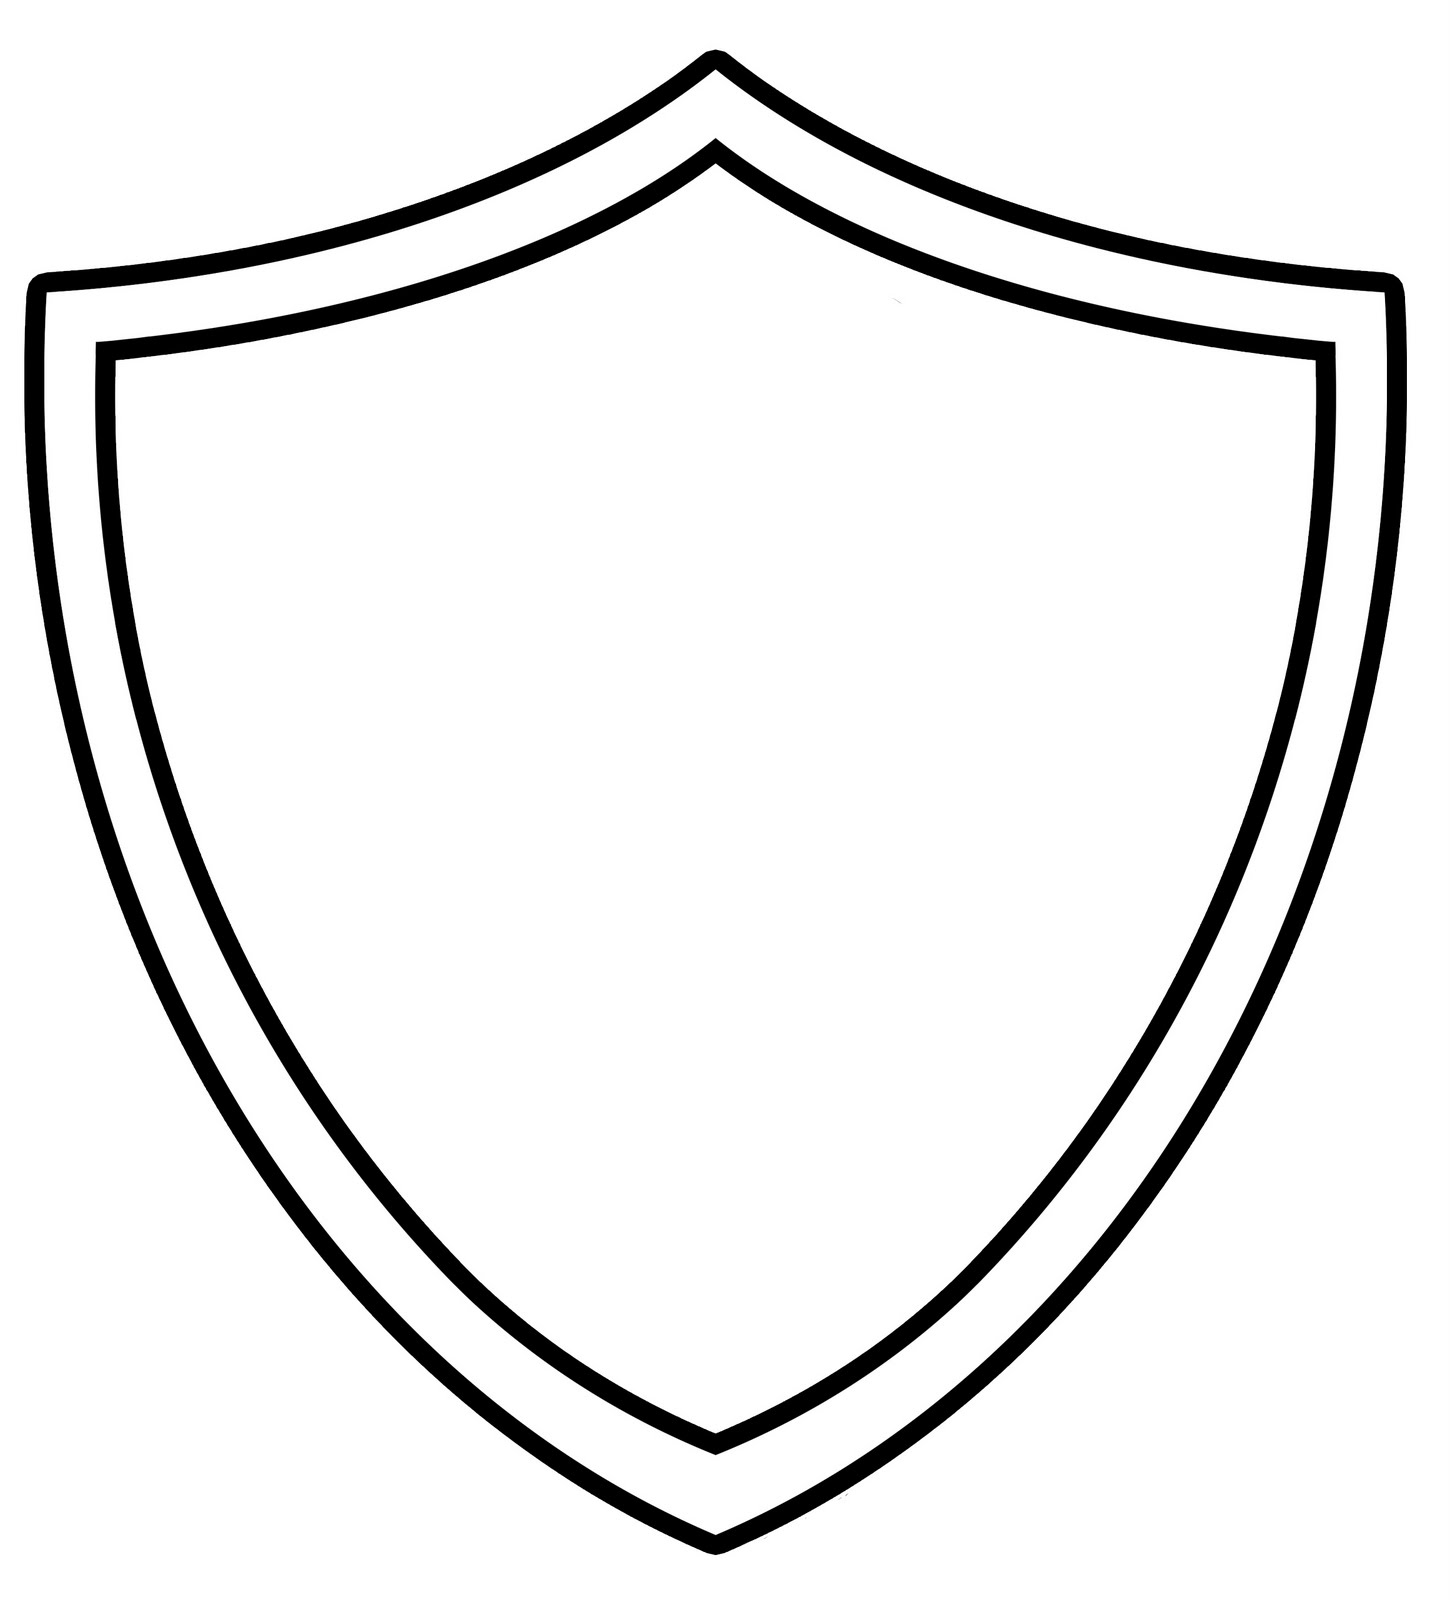 Cool shield template clipart panda free clipart images for Cool drawing sites